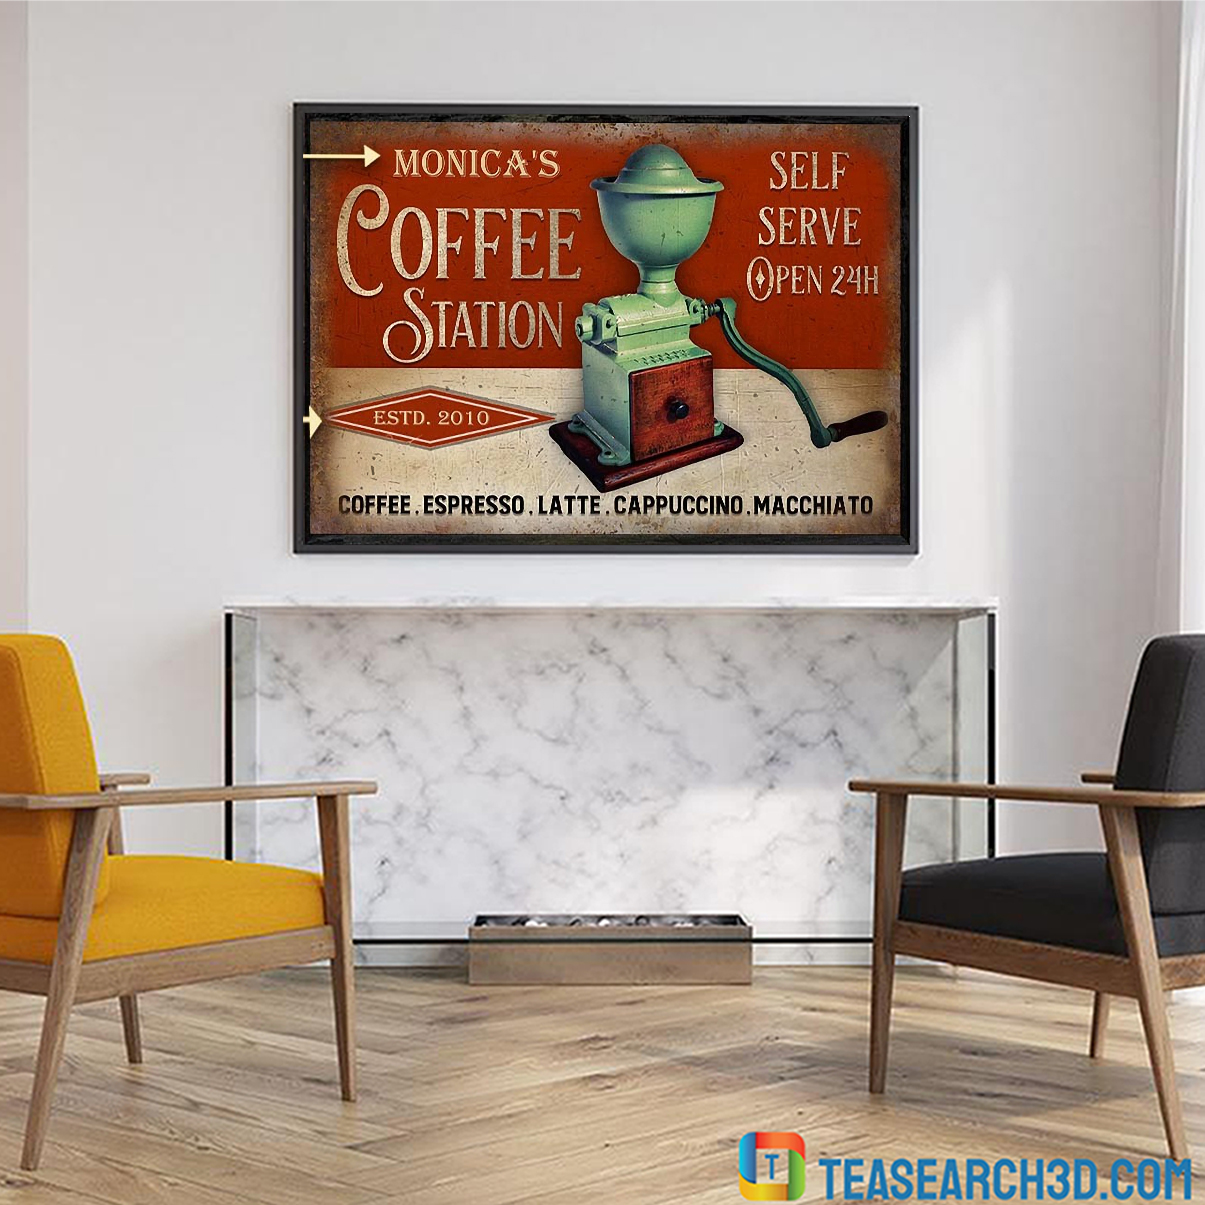 Personalized custom name coffee station self serve poster A2